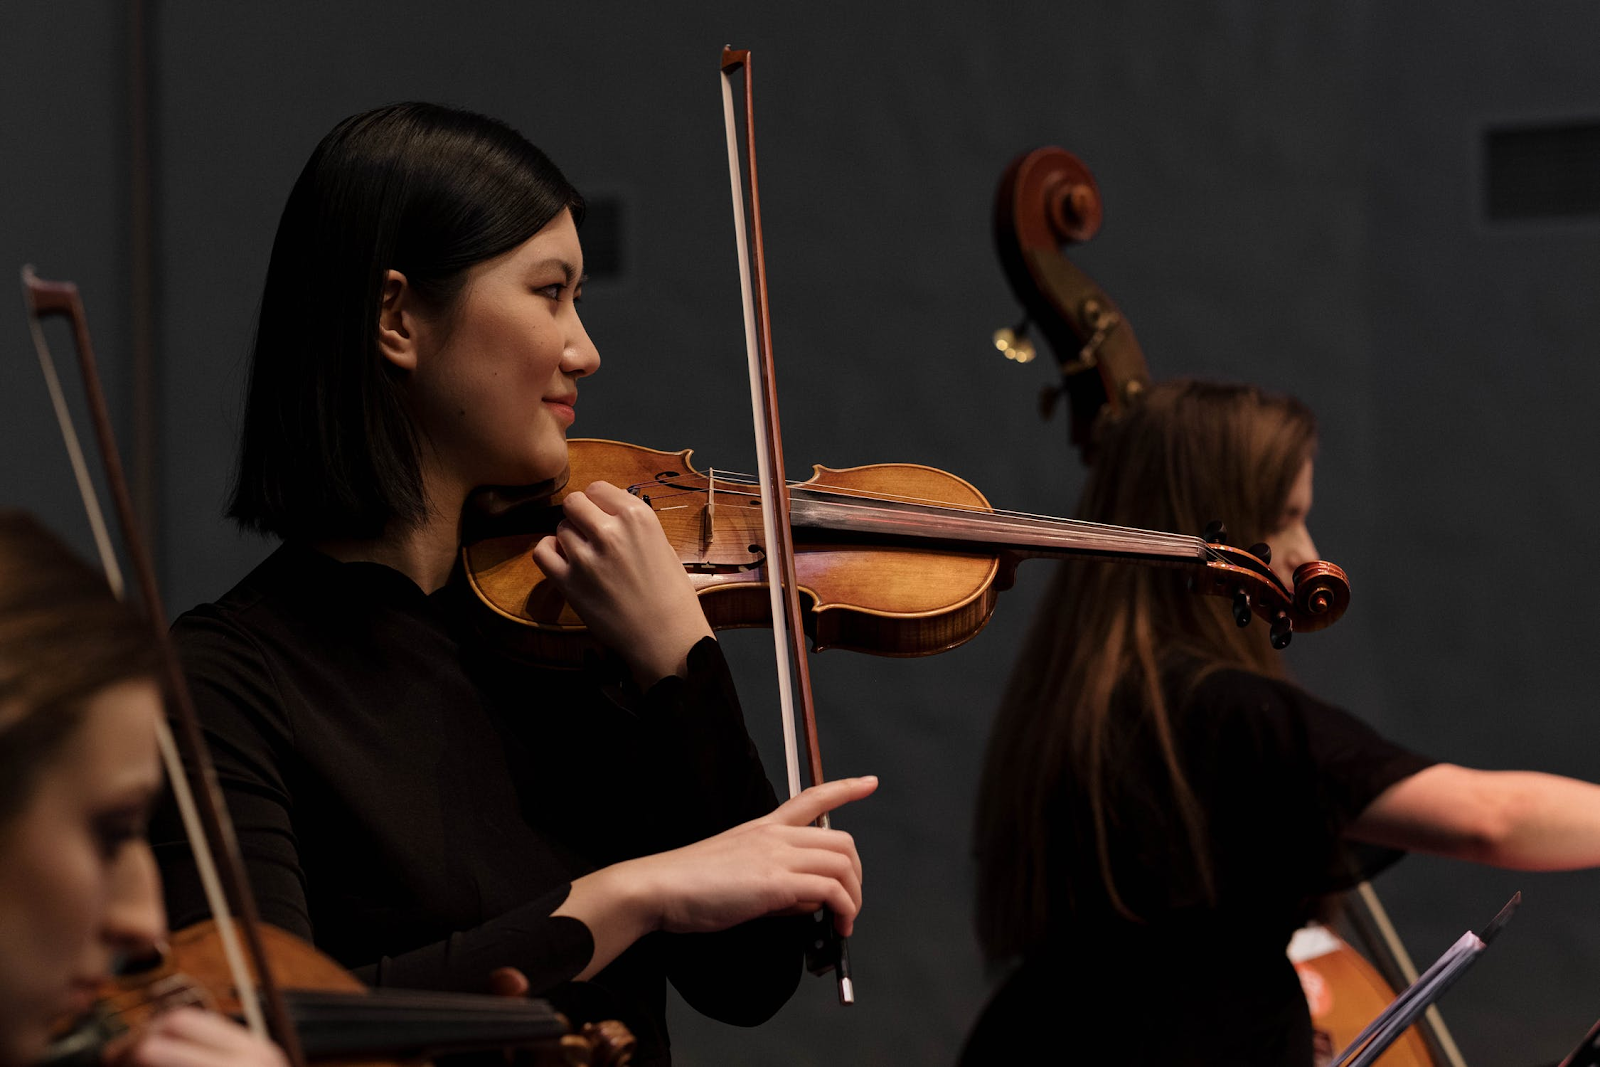 Woman engages with classical music by playing violin.